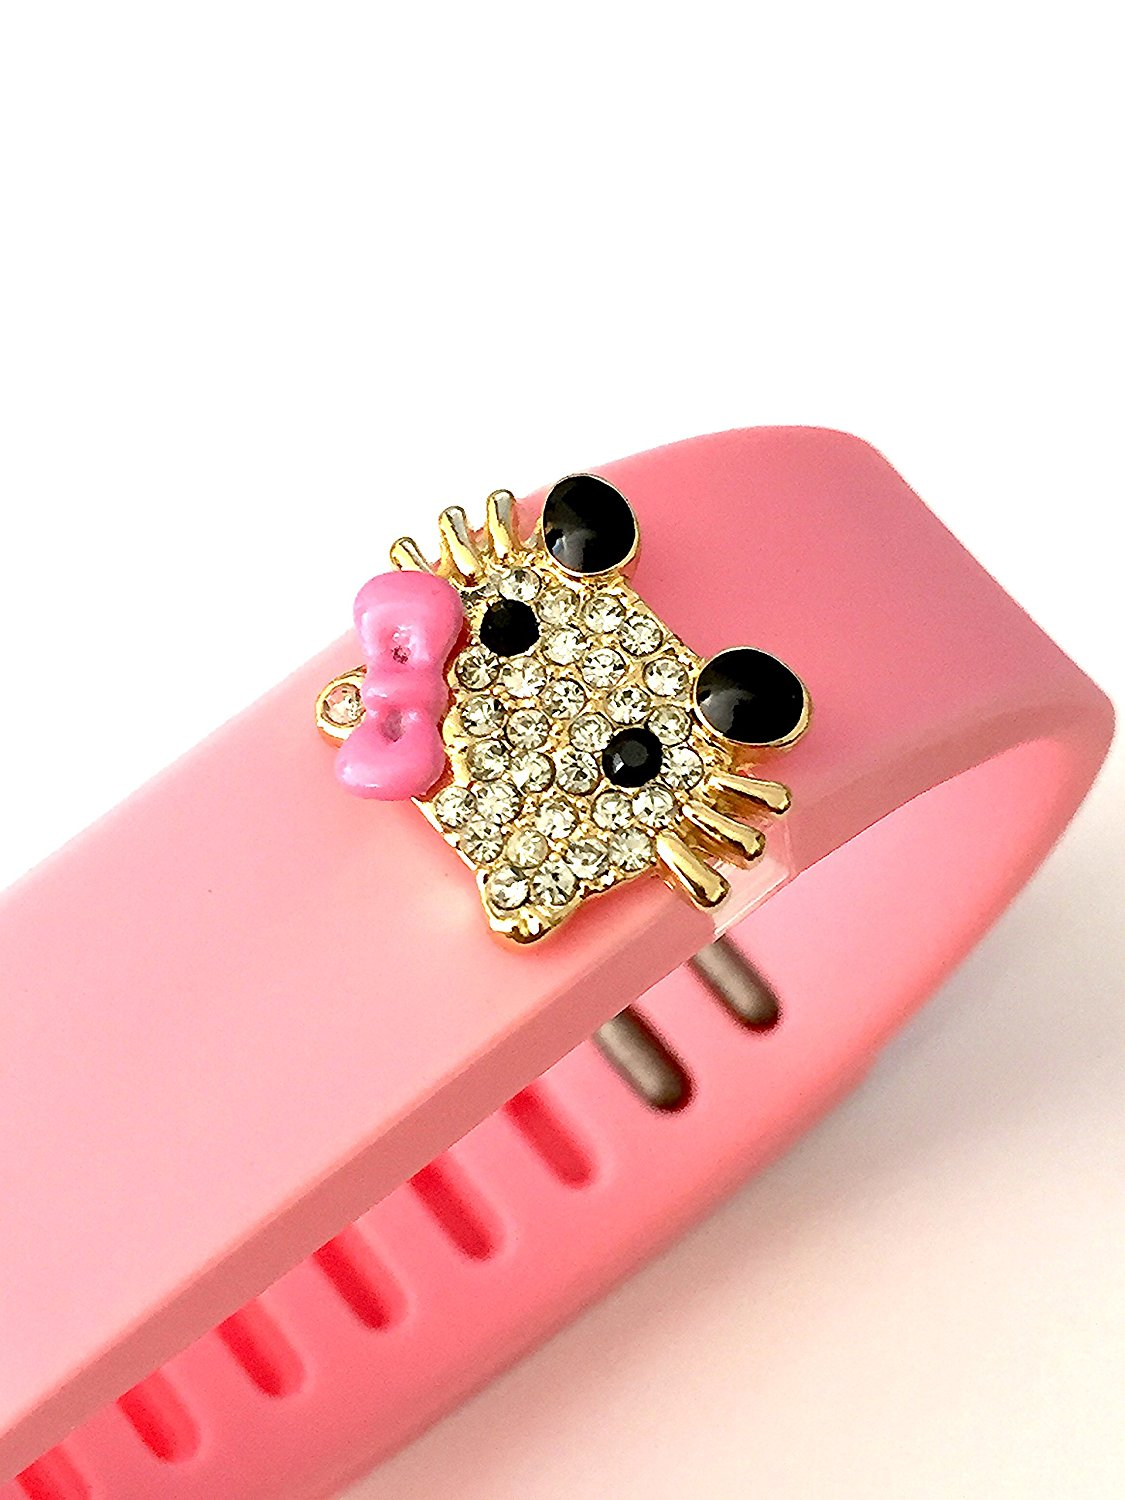 23c6b80d5 Get Quotations · BSI 1pc Large Baby Pink Color Band with Jewelry Crystals  Decoration /Hello Kitty with Crystals